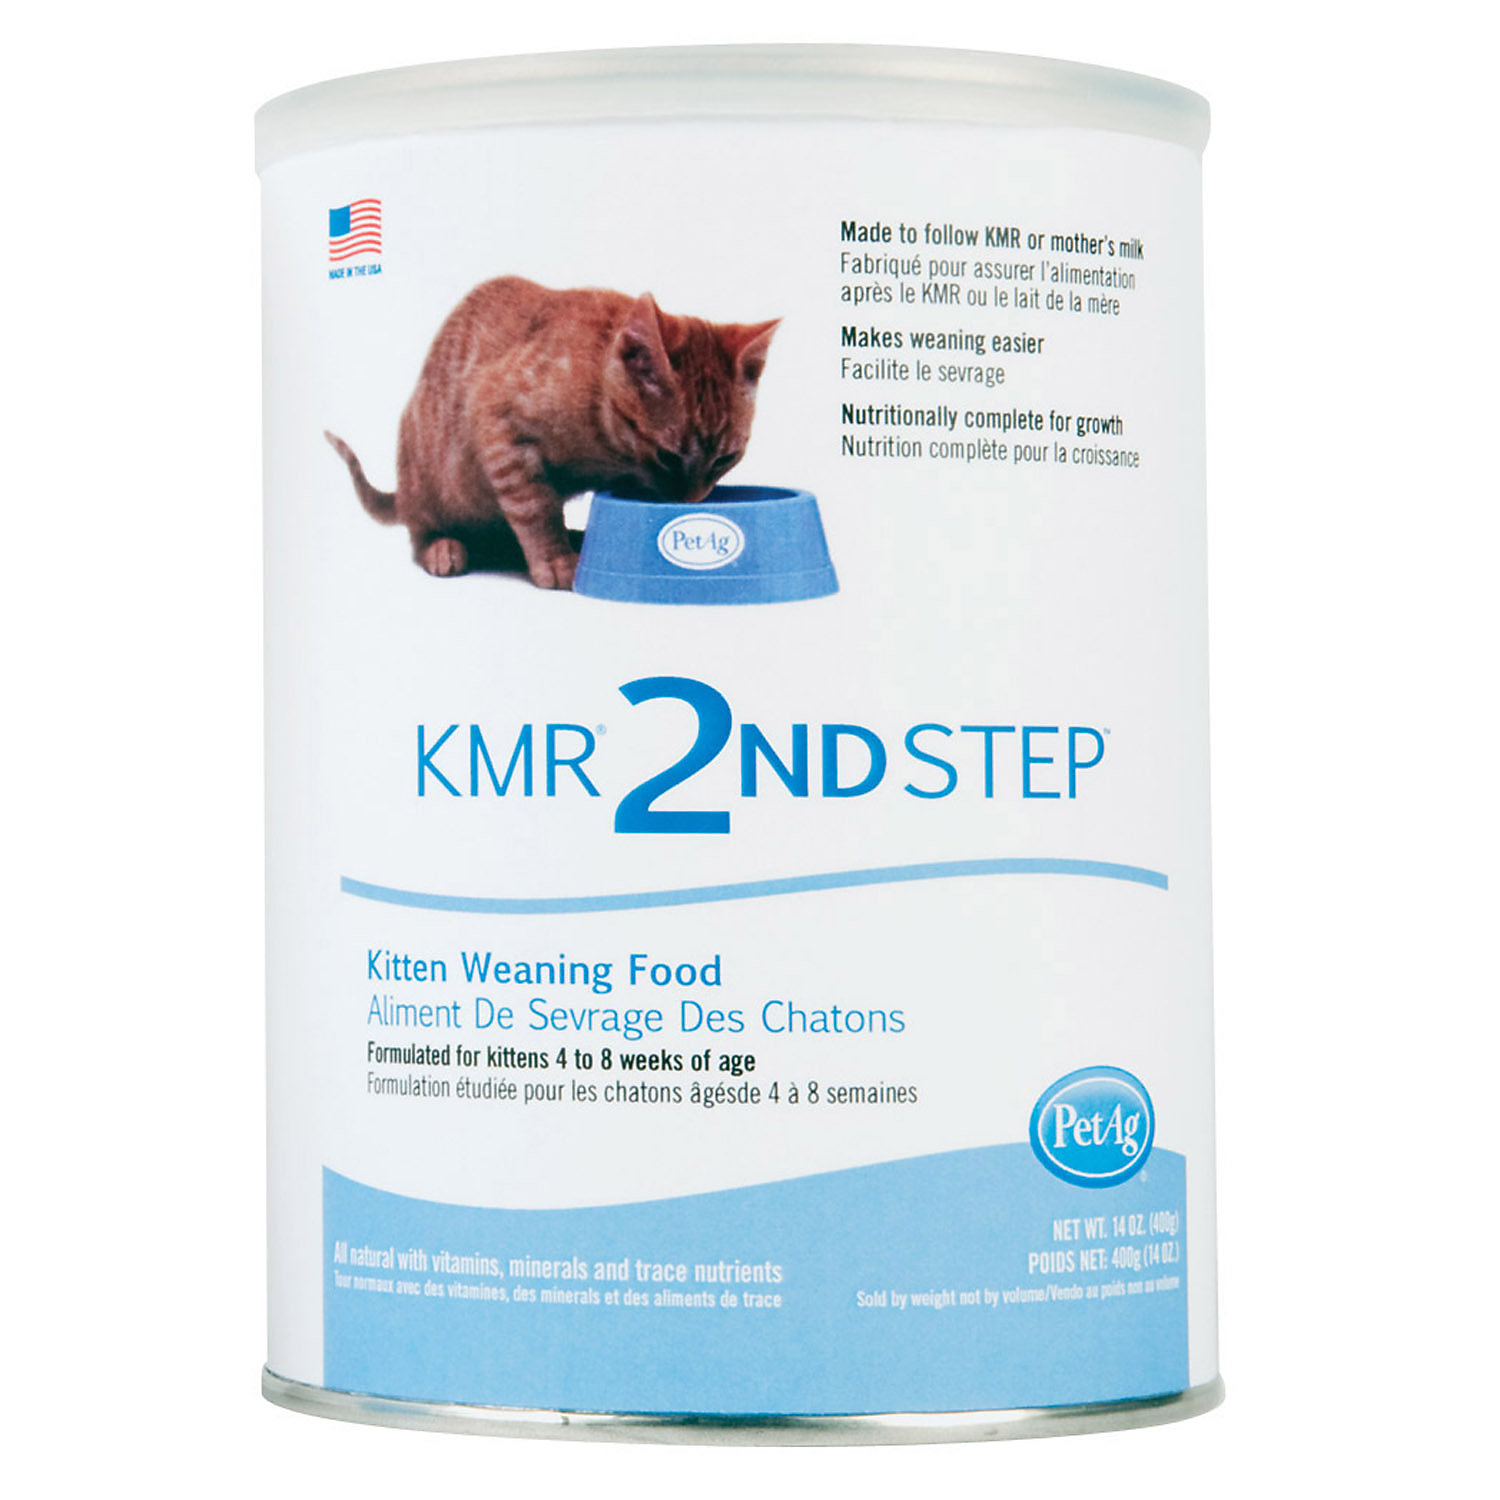 Petag Kmr 2nd Step Kitten Weaning Formula Powder